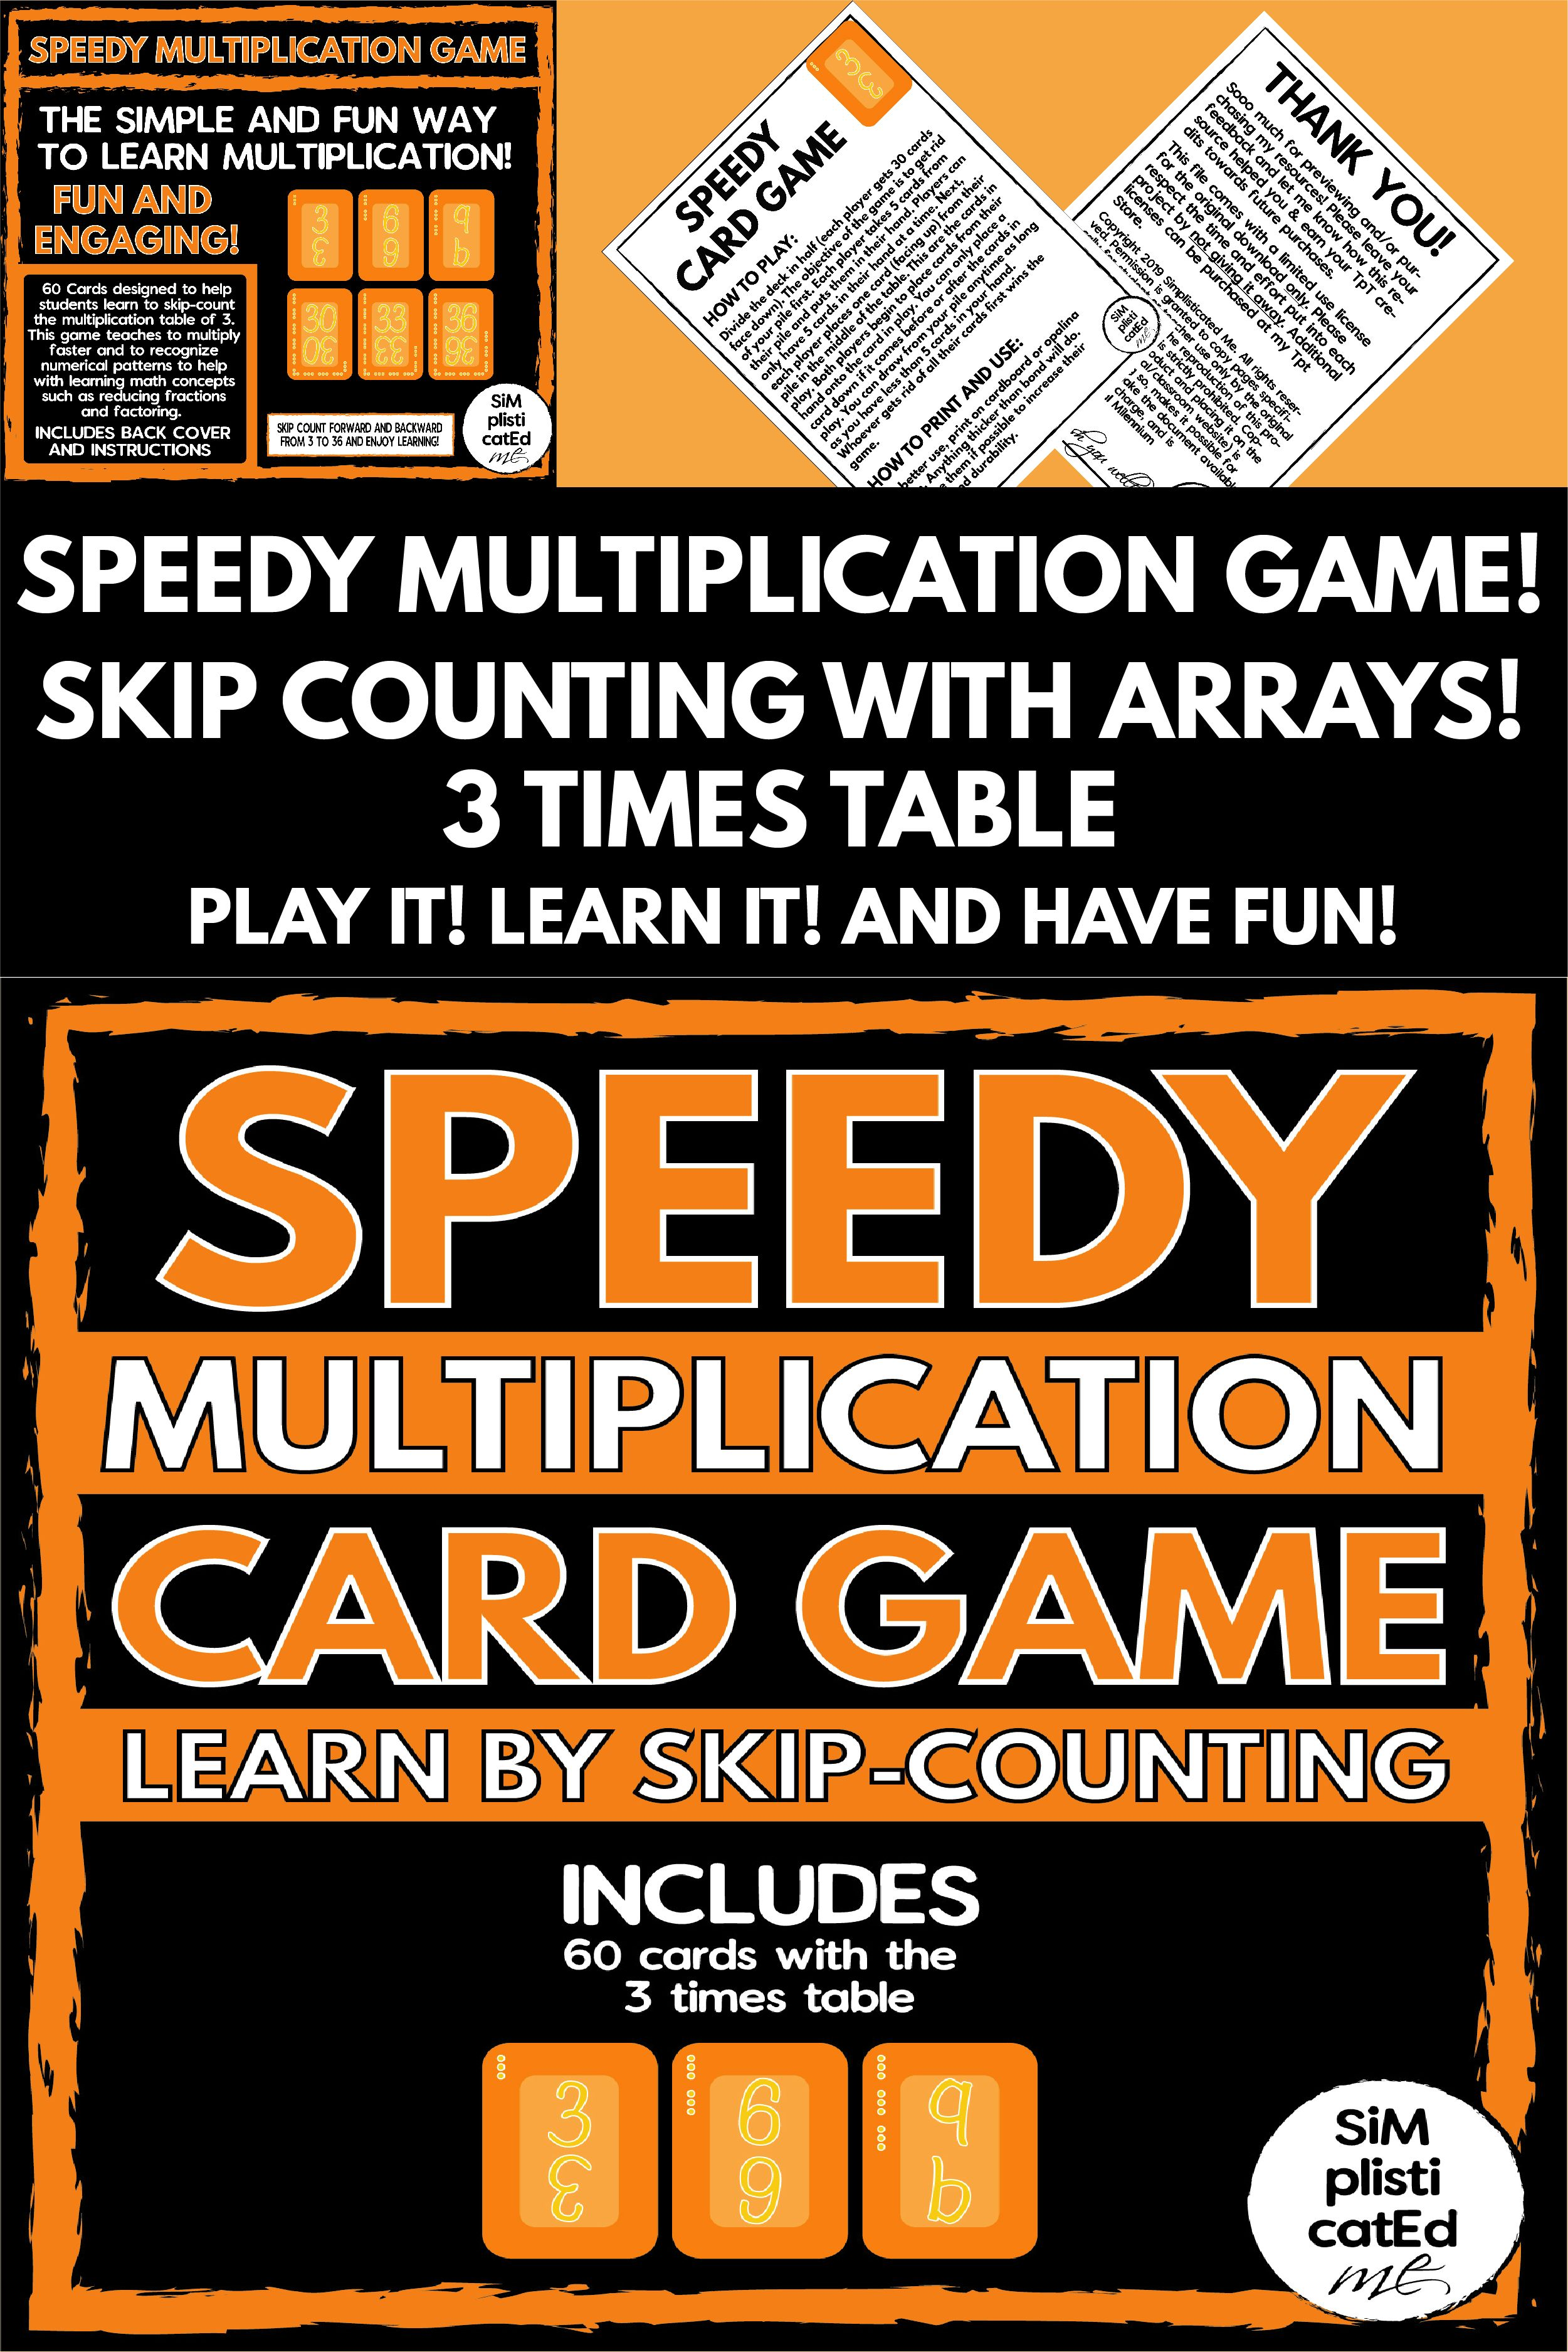 Speedy The Multiplication Card Game 3 Times Table Skip Counting Arrays Multiplication Cards Teaching Multiplication Card Games [ 3751 x 2501 Pixel ]